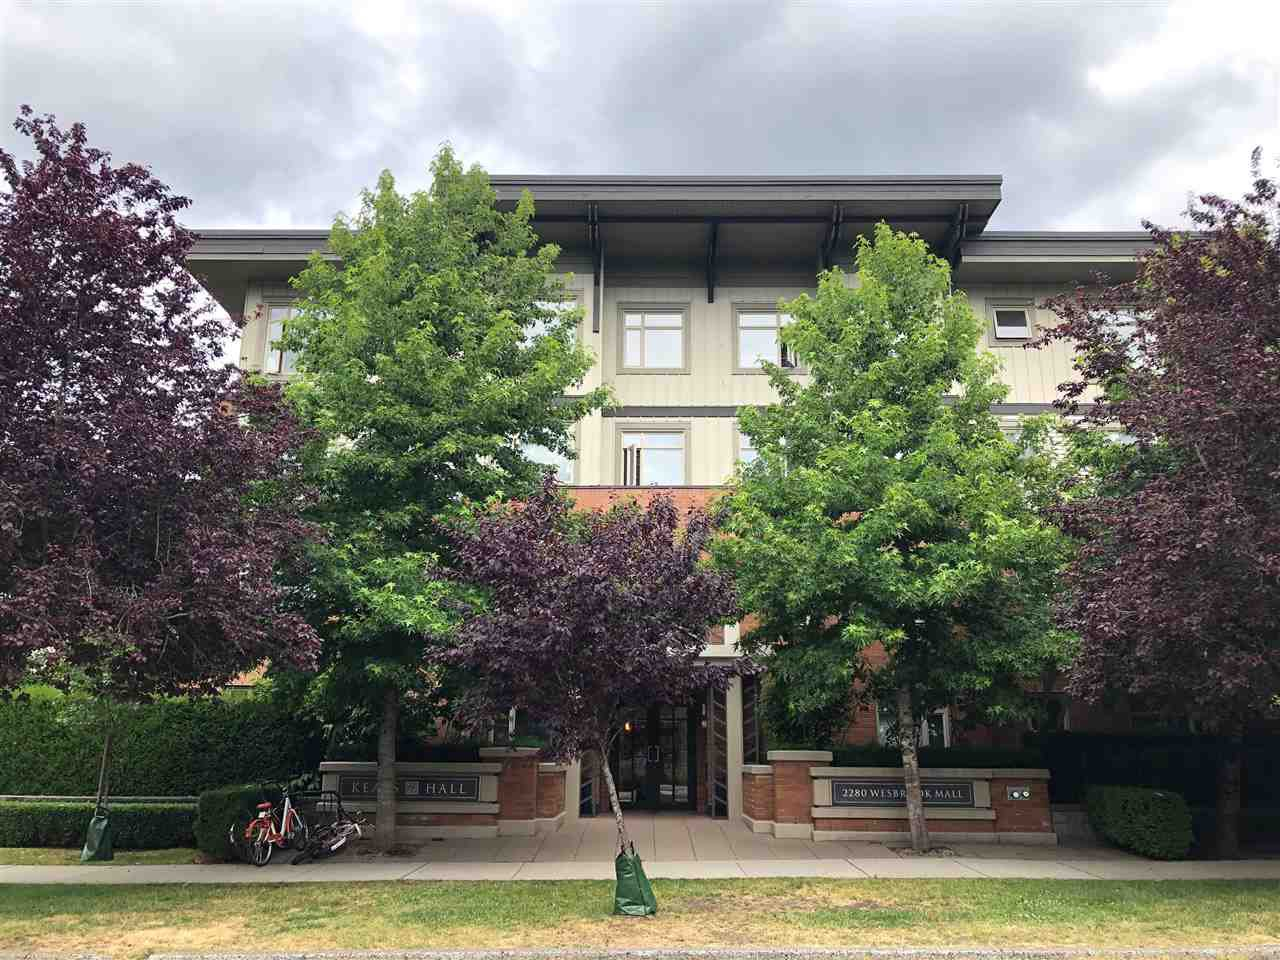 Main Photo: 218 2280 WESBROOK Mall in Vancouver: University VW Condo for sale (Vancouver West)  : MLS®# R2383195